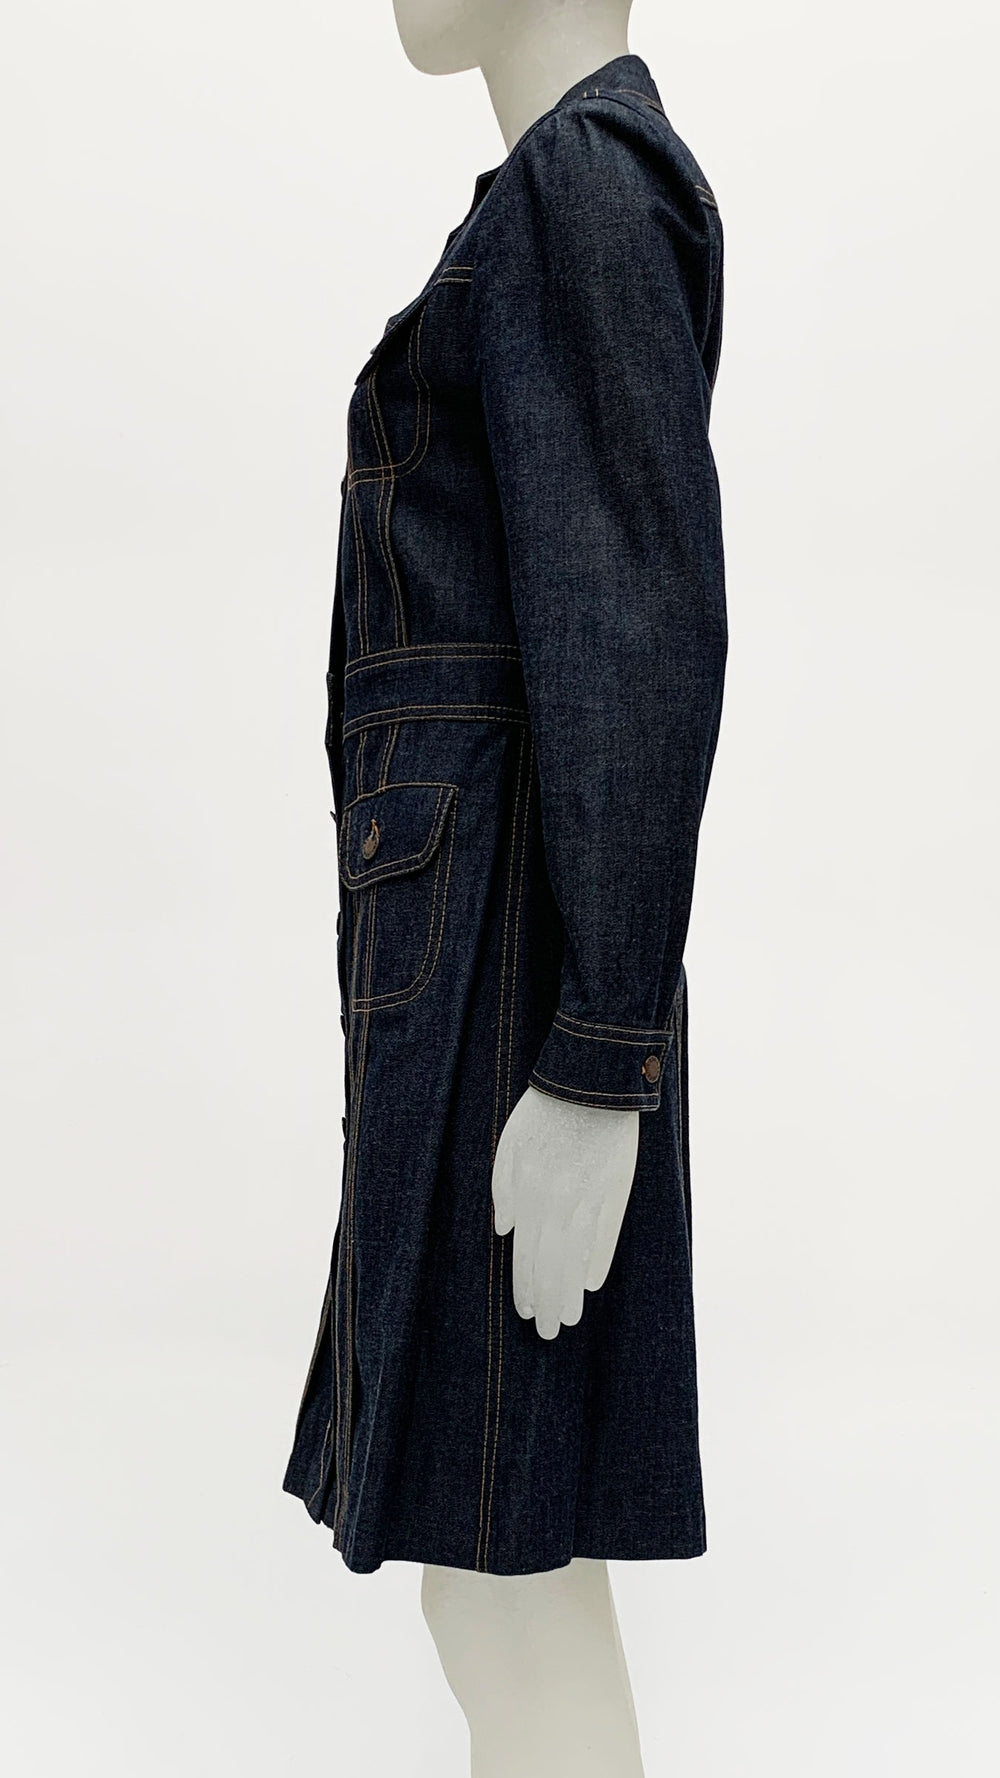 LONG JEAN JACKET WITH STITCHING DETAILS - 2